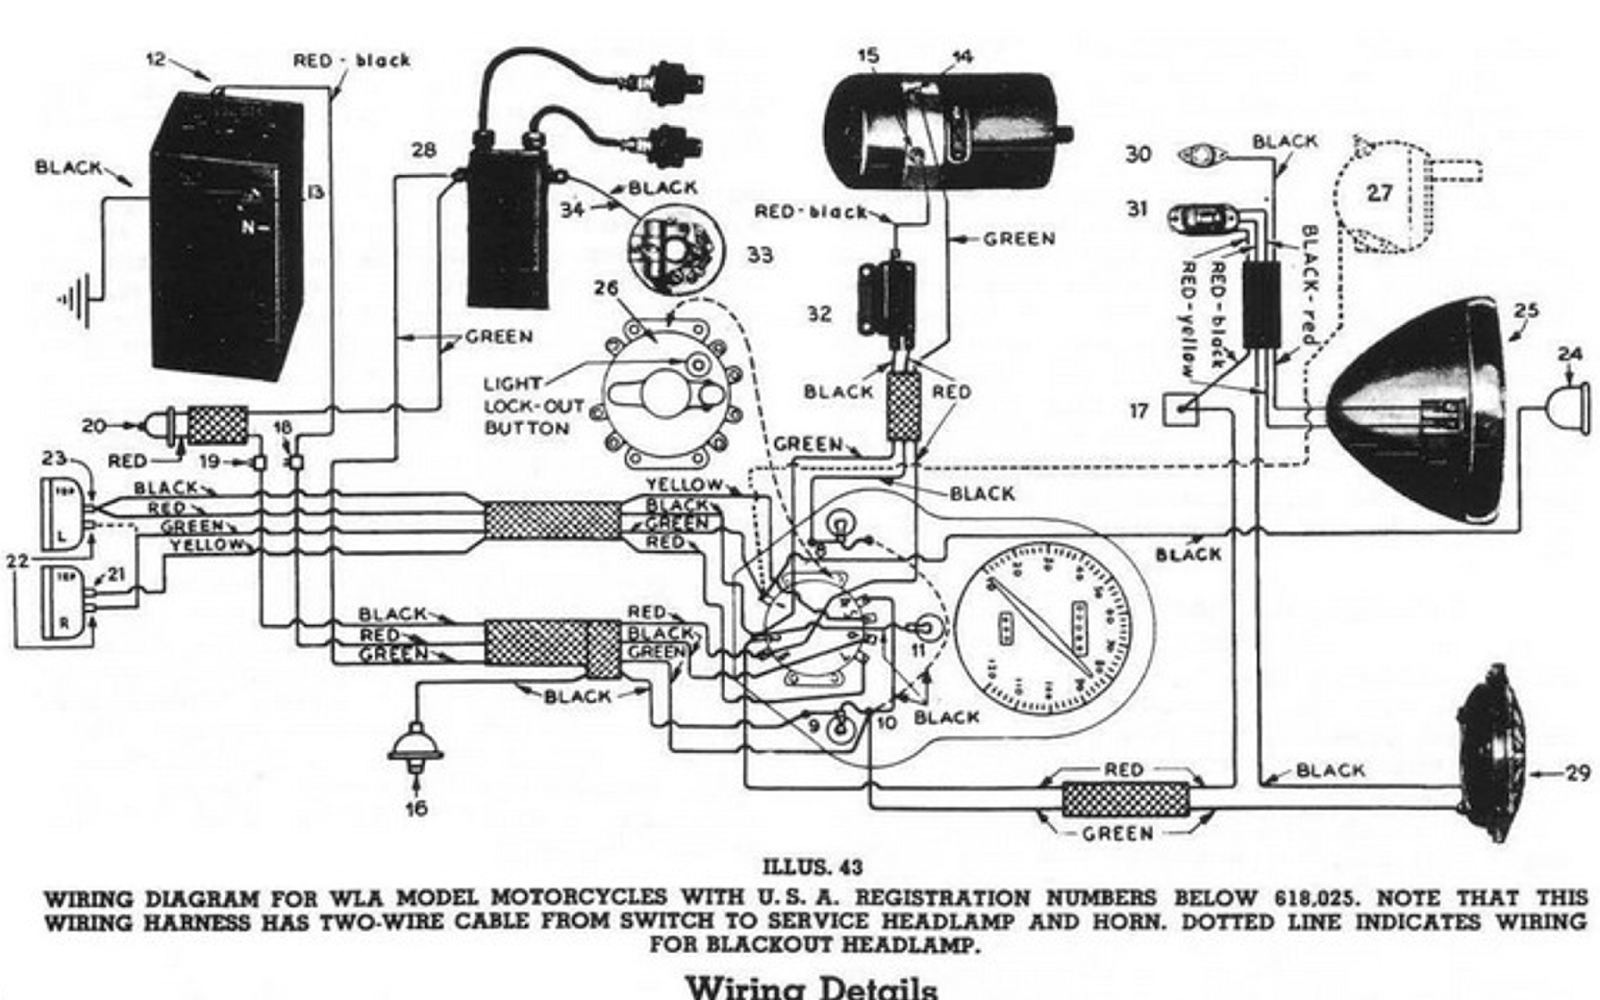 Wiring Diagram For Harley Davidson Panhead House 1973 Golf Cart Engine Rh Masinisa Co Basic